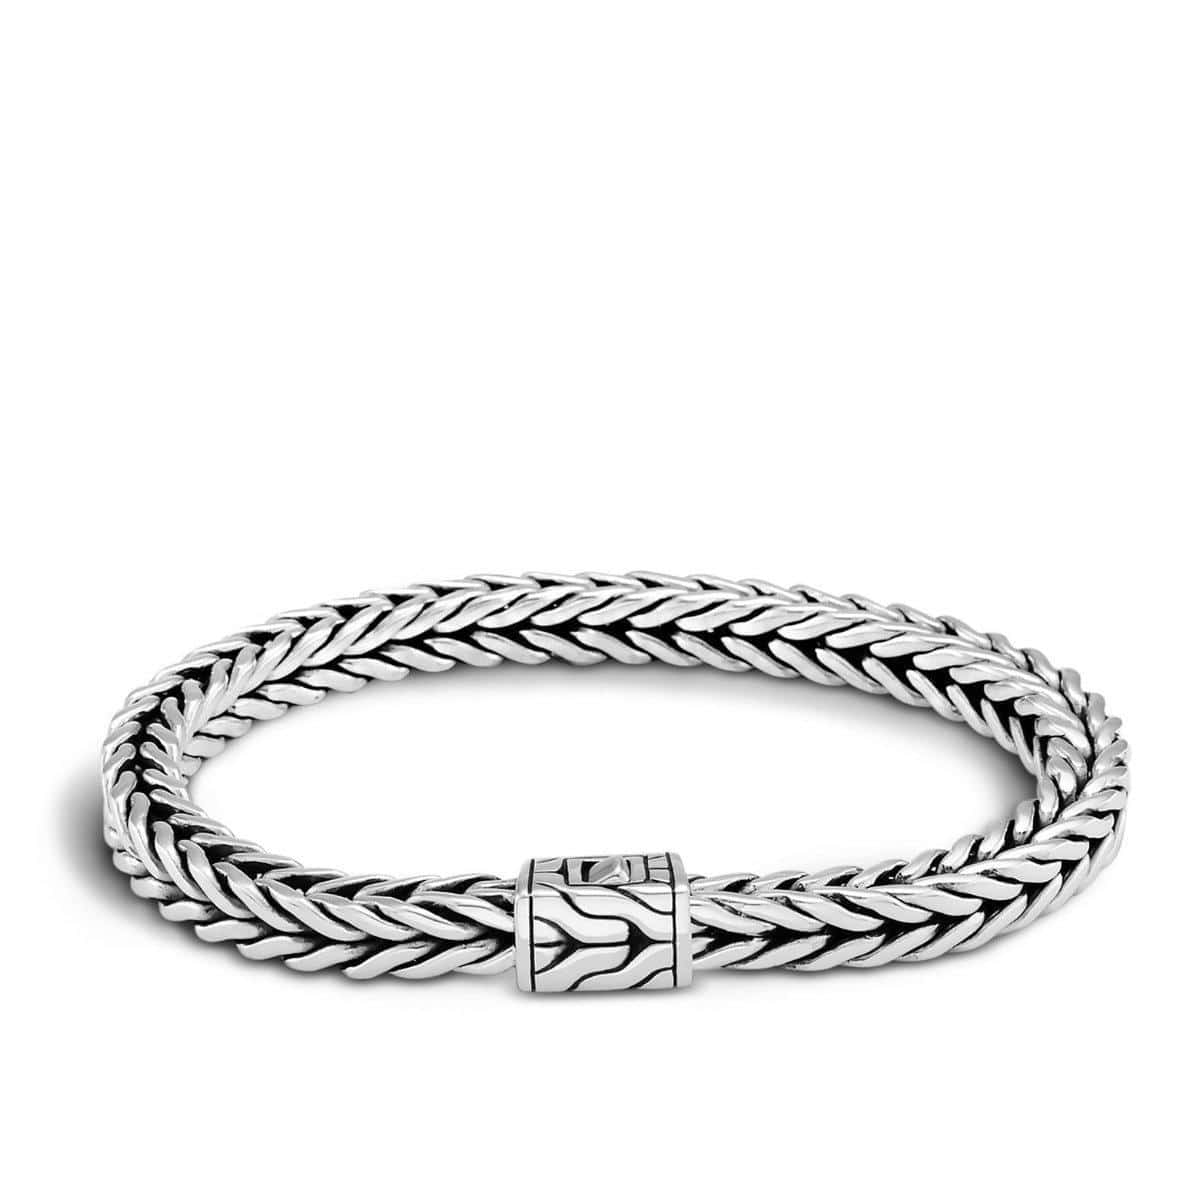 Classic Chain Men's Silver Small Square Bracelet - BM982C-John Hardy-Renee Taylor Gallery